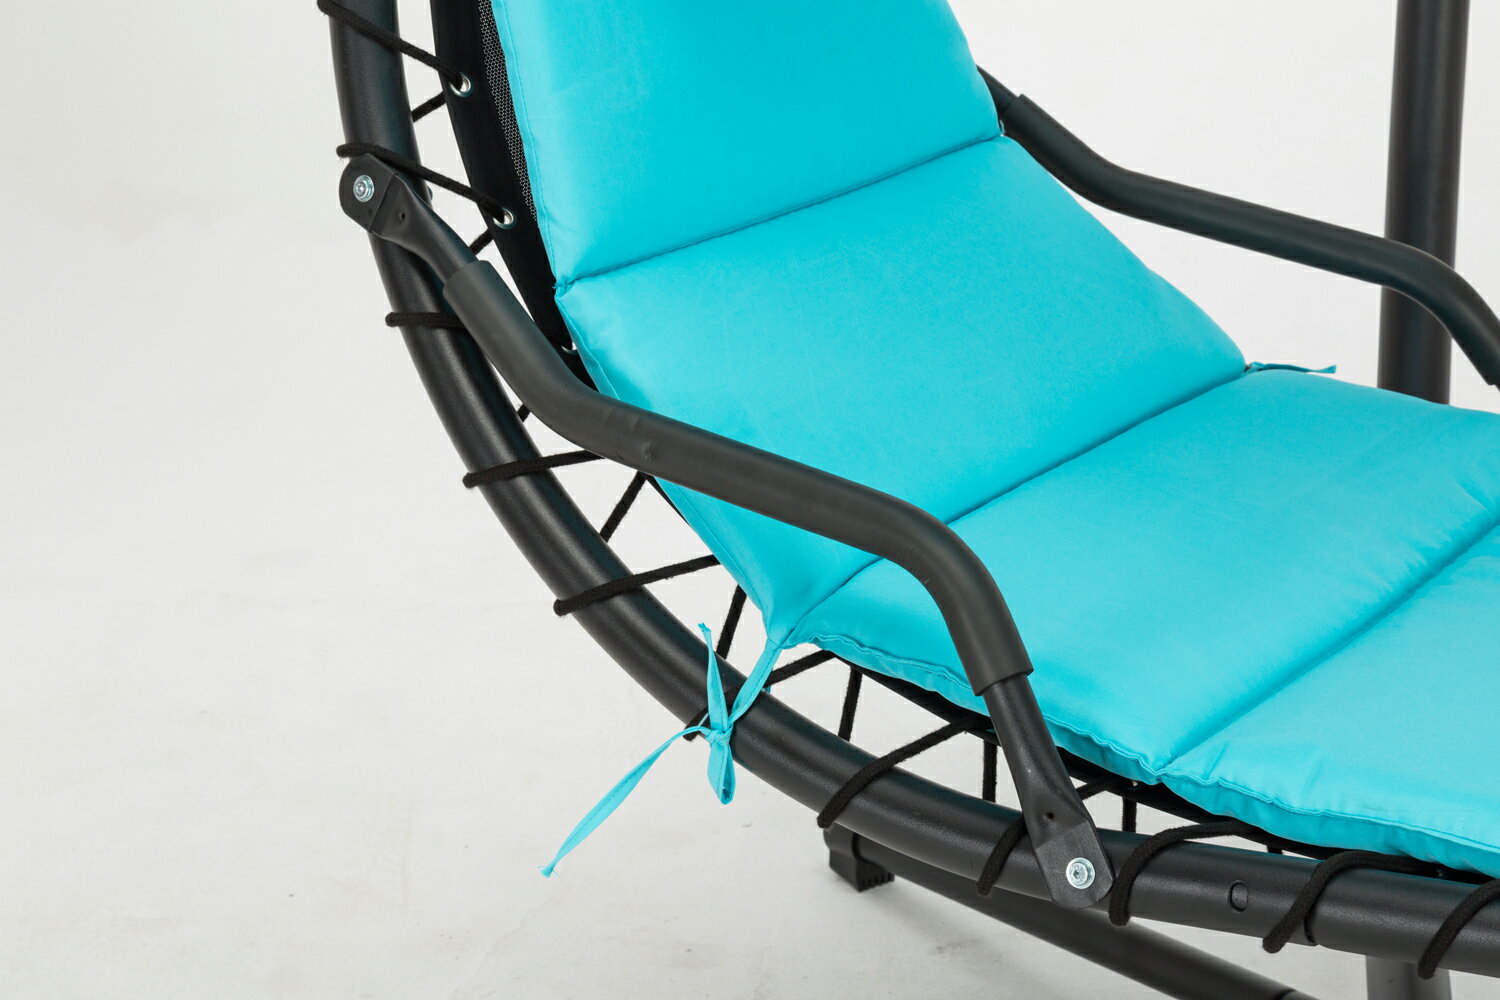 Mcombo Hanging Chaise Lounger Swing Hammock Chair with Canopy - Teal 1000 3